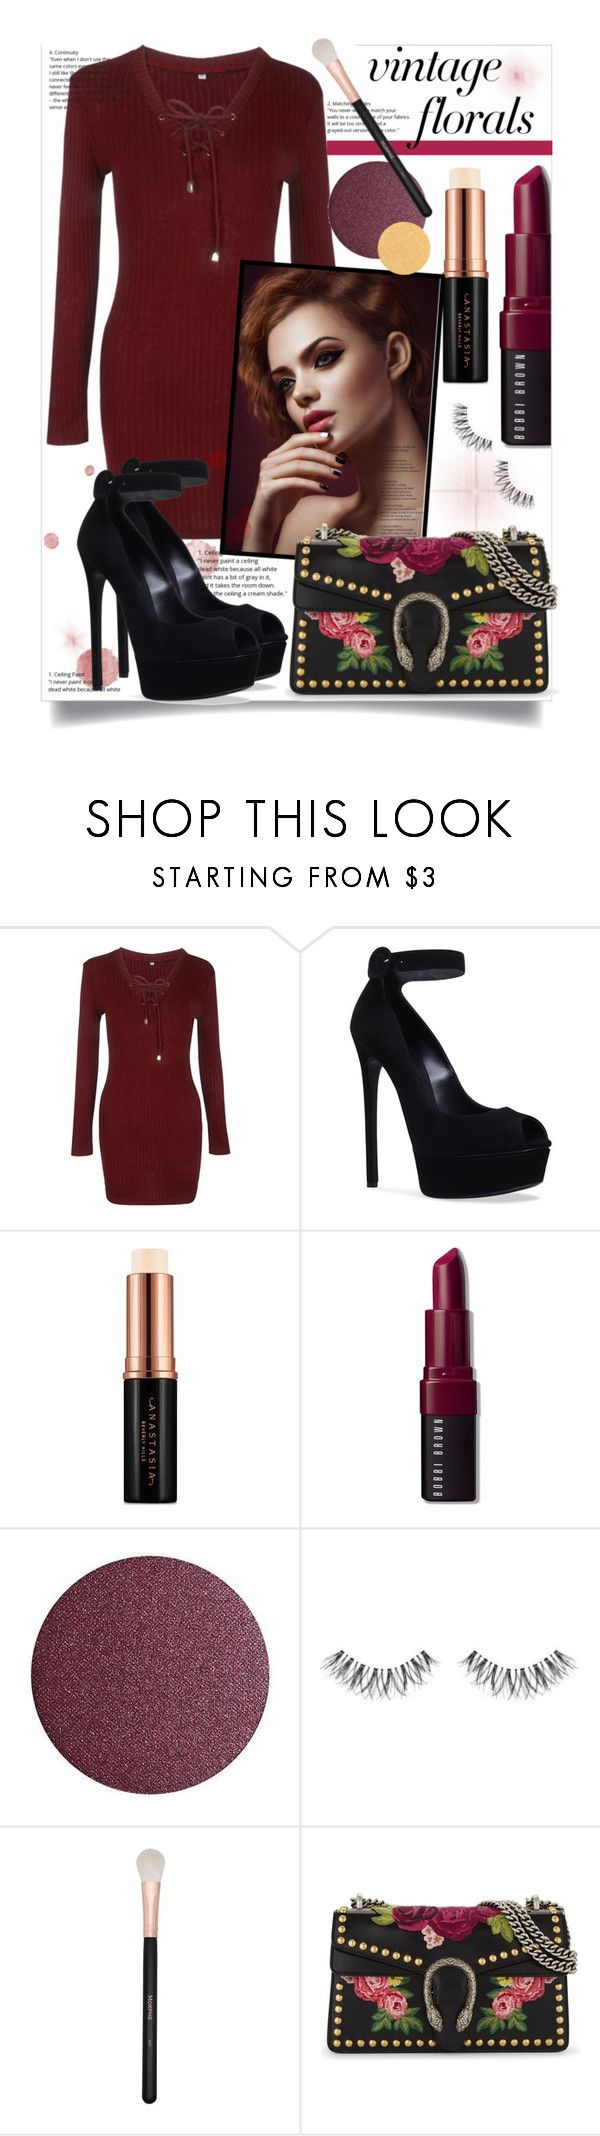 """""""Red Hot"""" by bitty-junkkitty ❤ liked on Polyvore featuring WithChic, Casadei, Anastasia Beverly Hills, Bobbi Brown Cosmetics, Morphe and Gucci"""